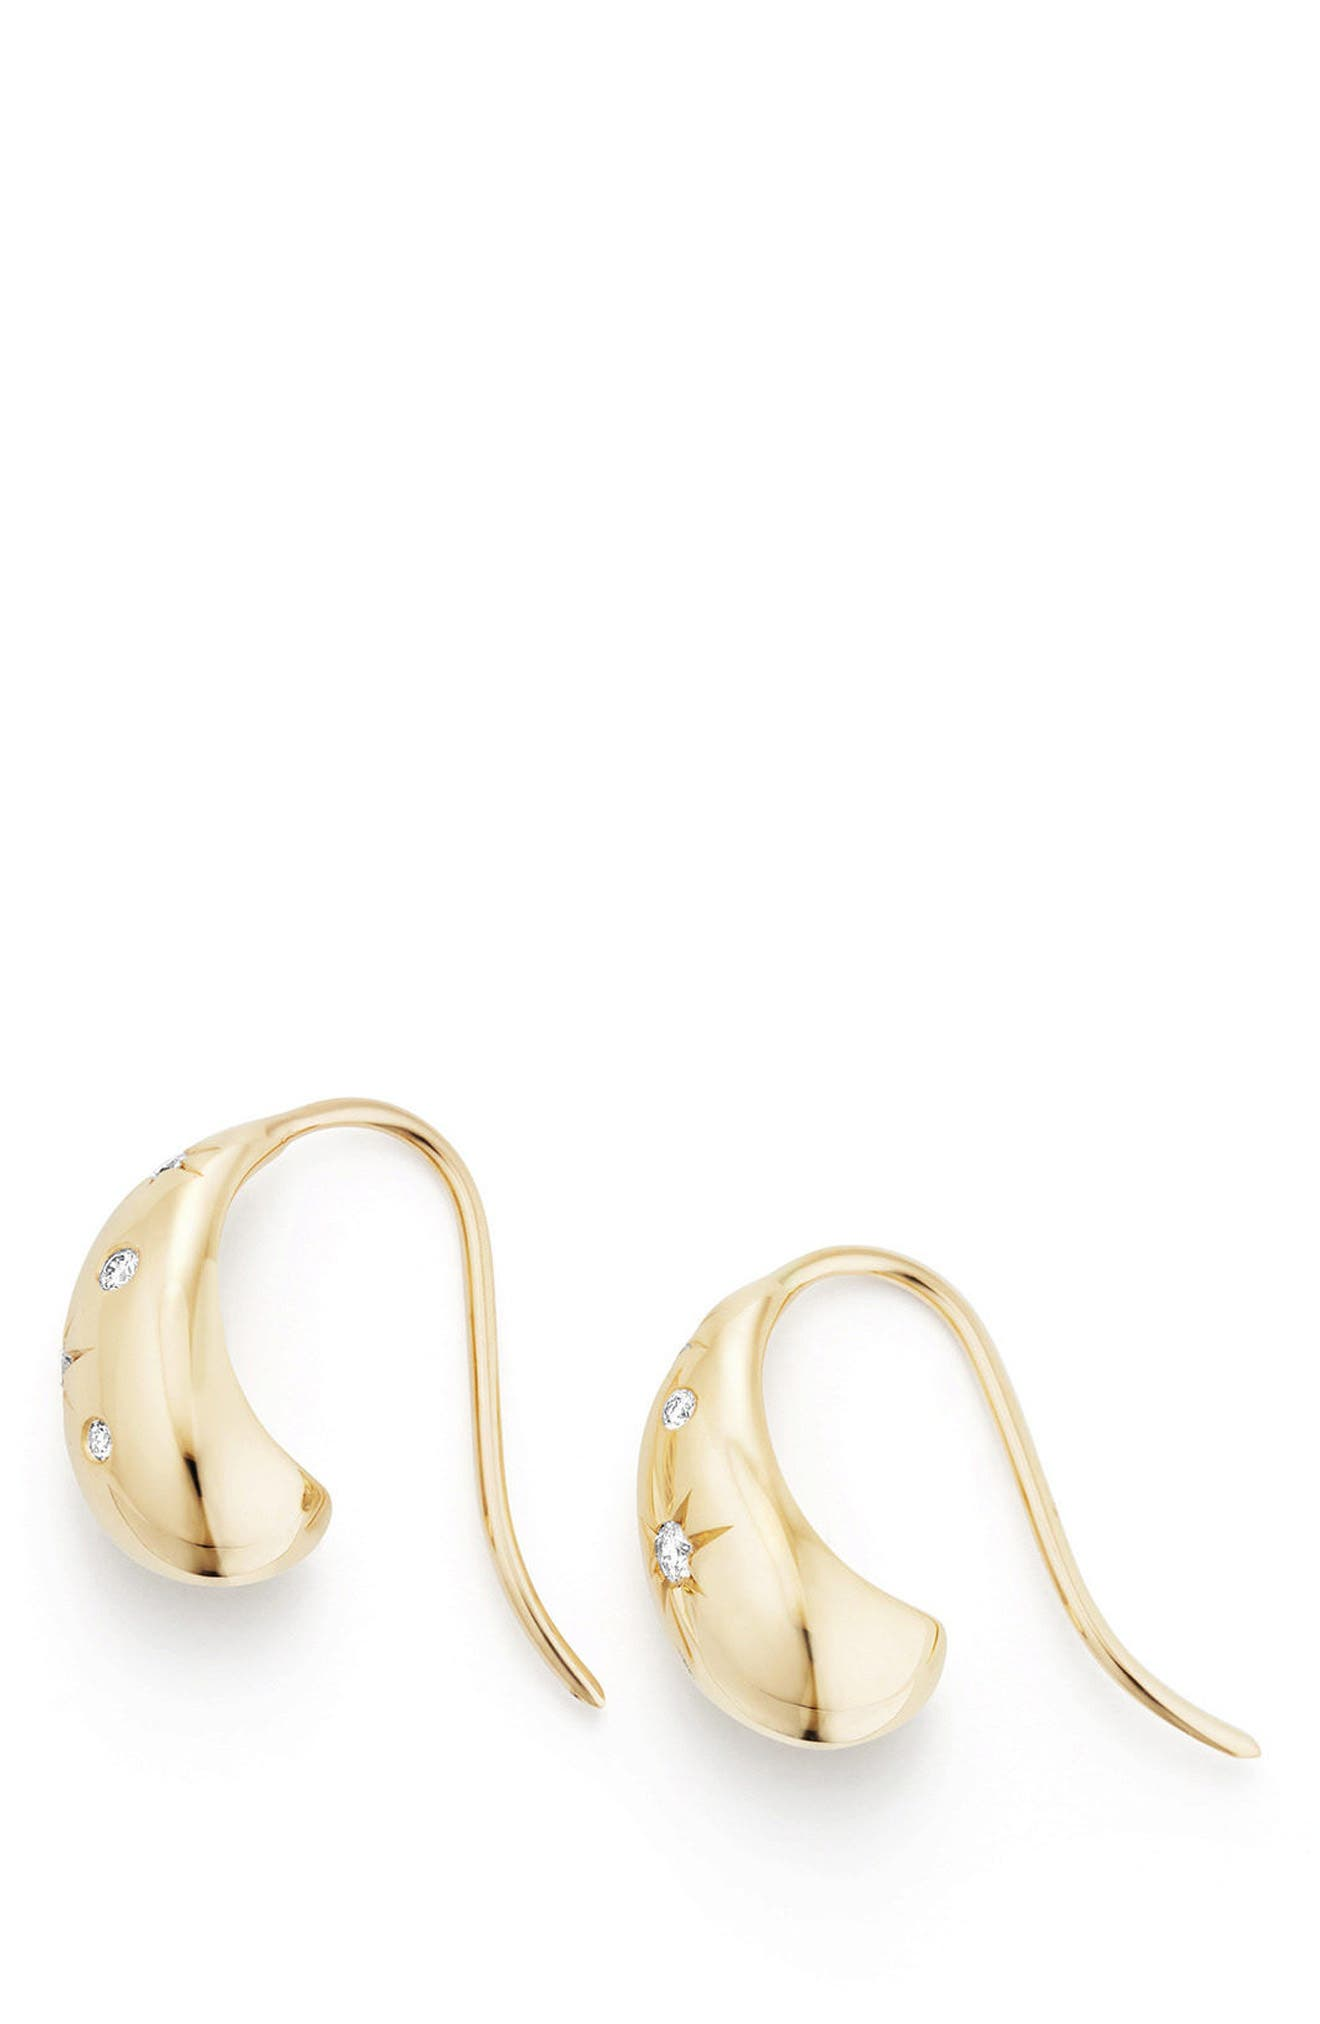 Pure Form Pod Earrings with Diamonds in 18K Gold, 15mm,                             Alternate thumbnail 2, color,                             Yellow Gold/ Diamond